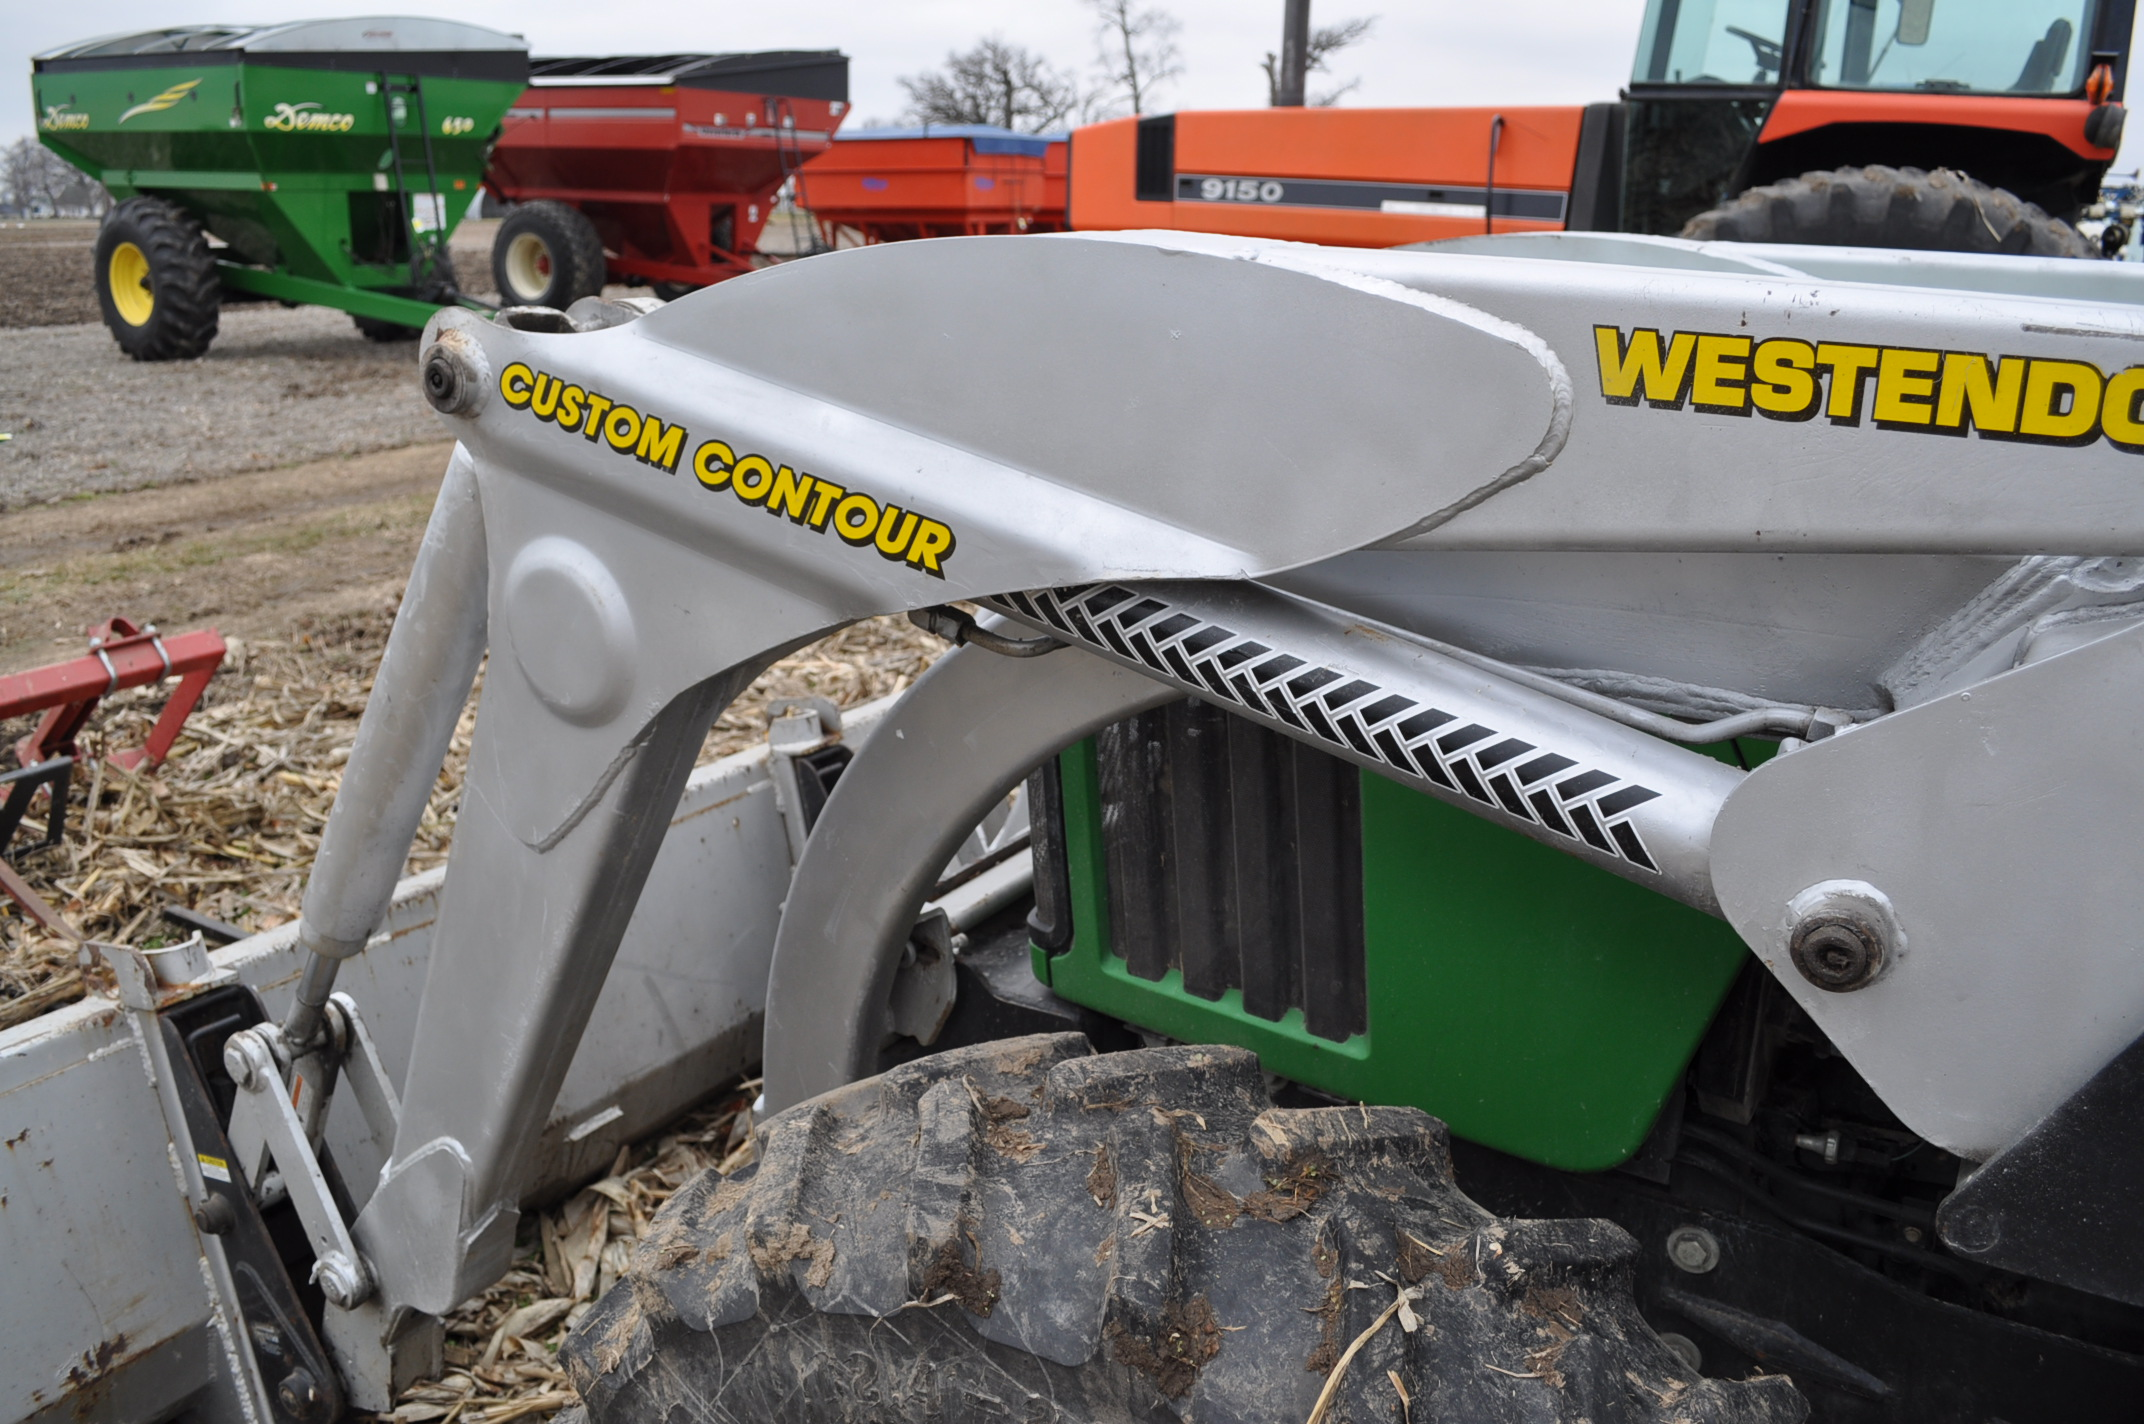 John Deere 5520 utility tractor, MFWD, 18.4 R 30 rear, 12.4-24 front, rear wheel wts, 2 hyd remotes, - Image 20 of 26